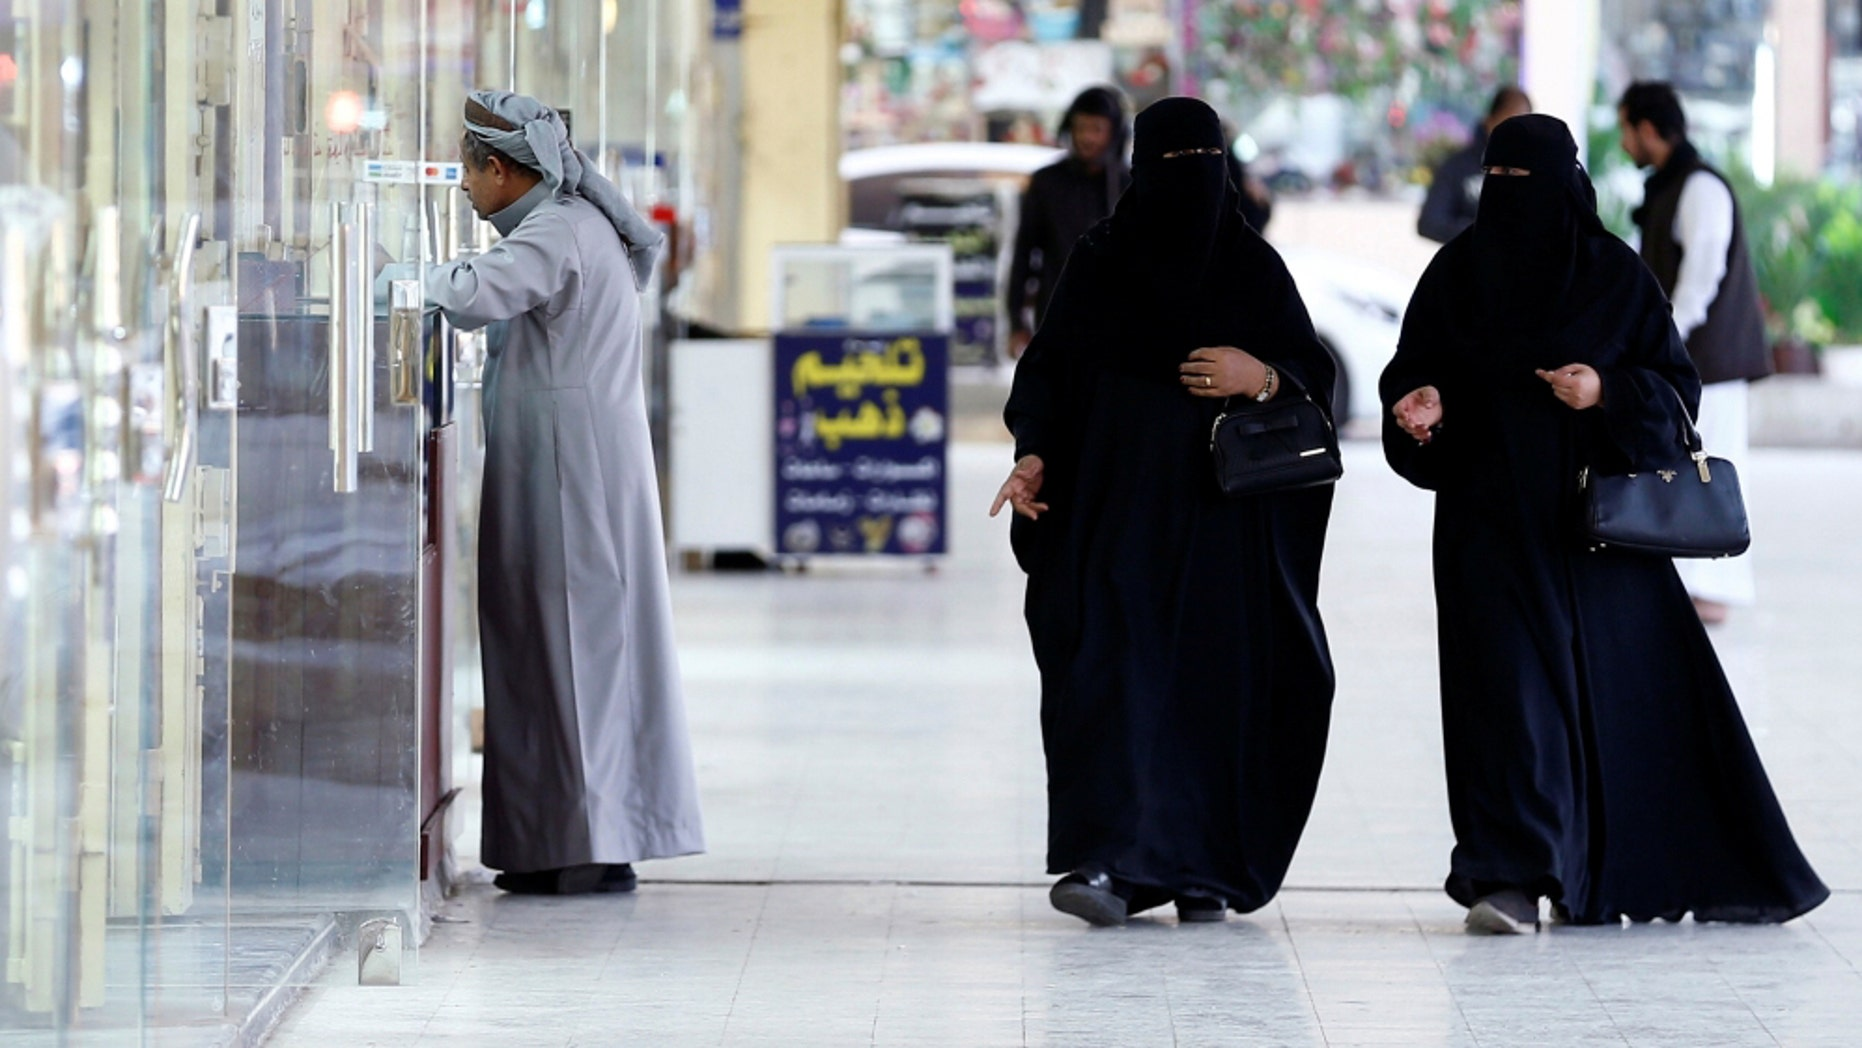 A top cleric in Saudi Arabia said Friday that women should not be forced to wear long black robes any longer.